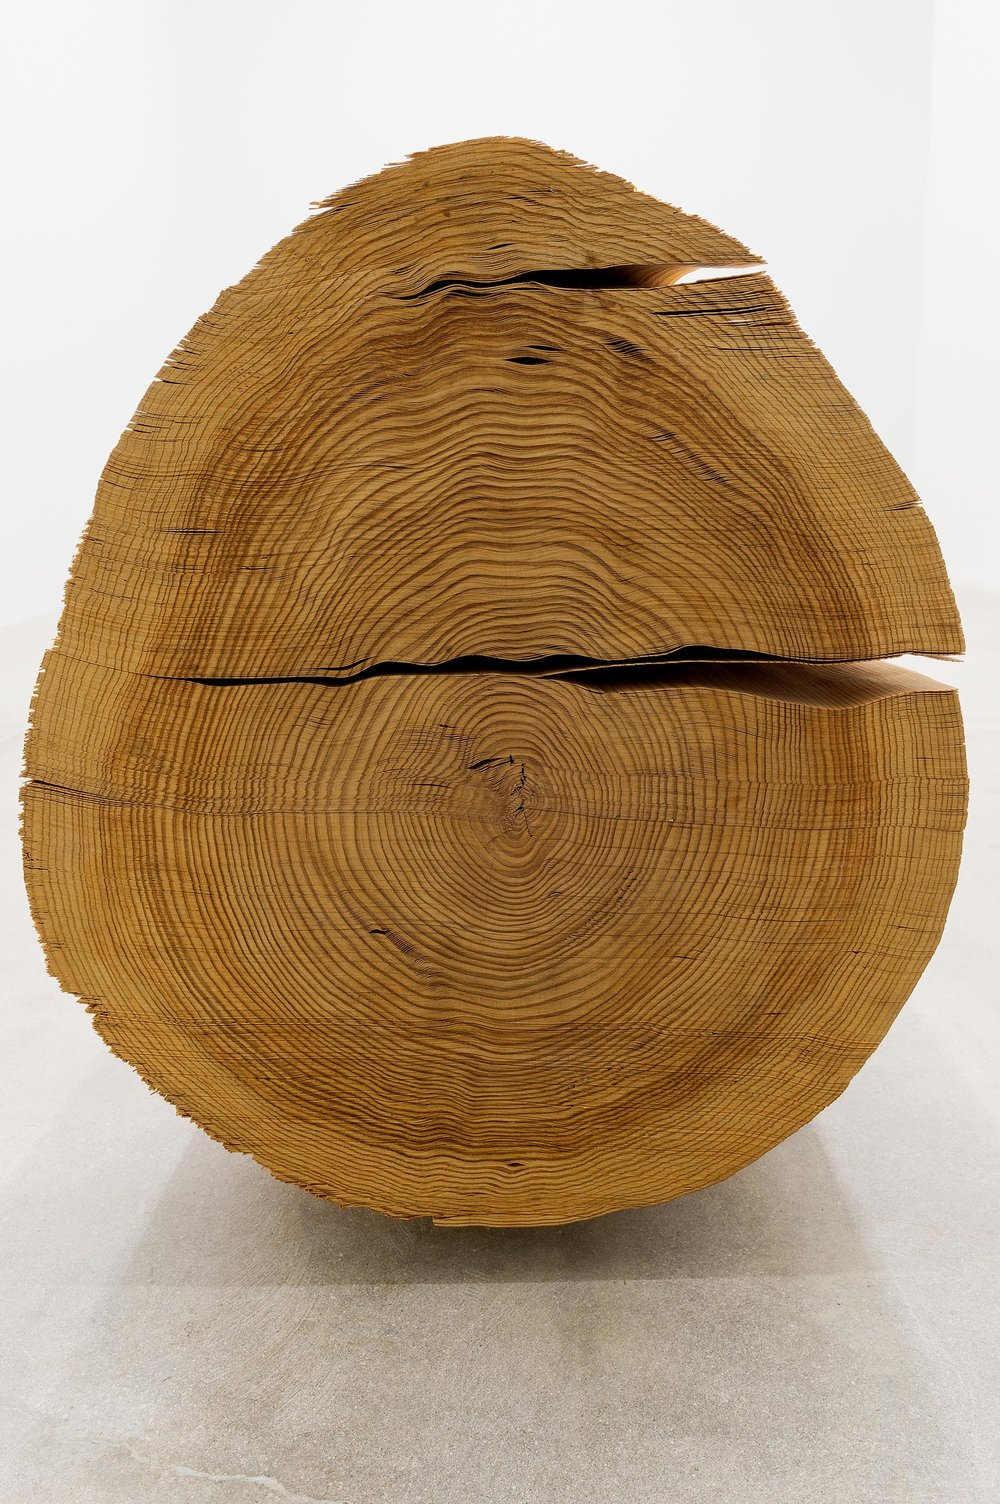 Wood No. 5-CI, 1984